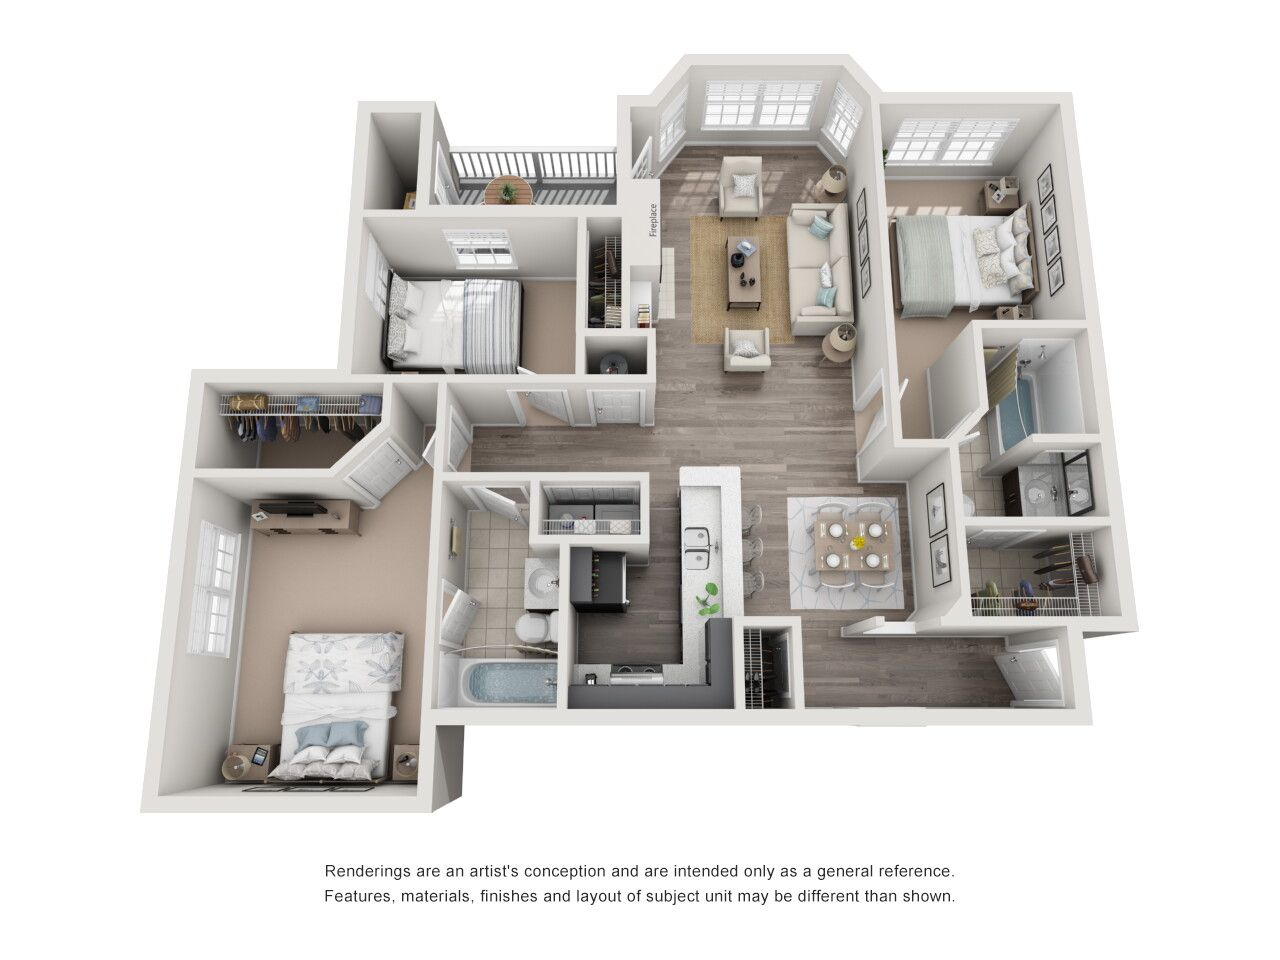 Can You Get An Apartment At 18 In Georgia Floor Plans Jefferson At Perimeter Steadfast Apartment Renting Rental Georgia Dunwoody Apartment Floor Plans Floor Plans House Layout Plans